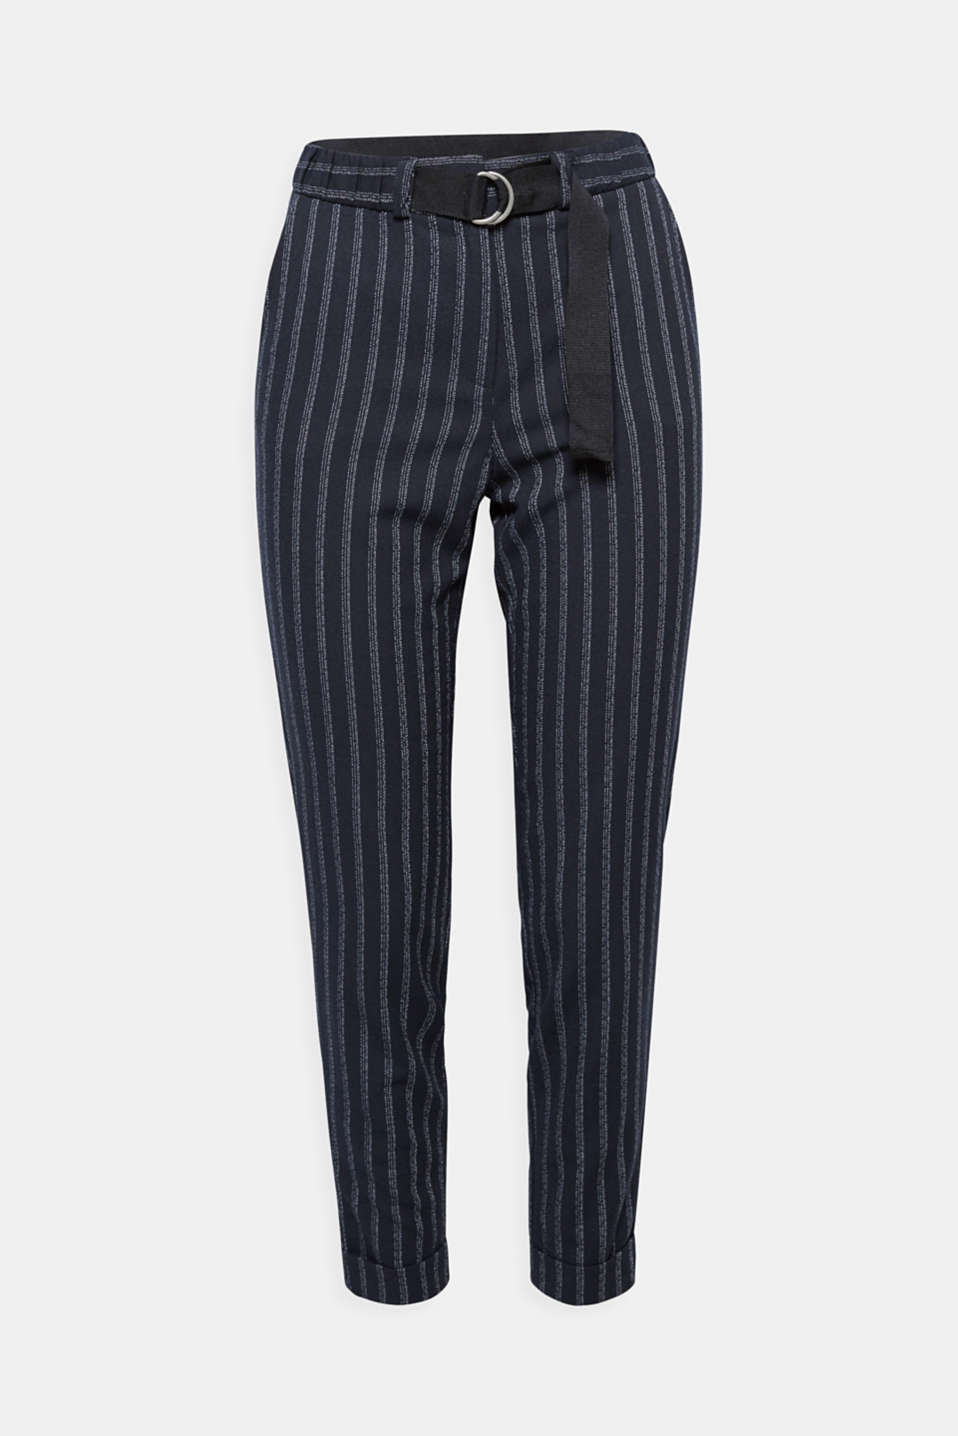 Comfortable and chic – these casual jogging bottoms with an elasticated waistband and a fine chalk stripe design are both!